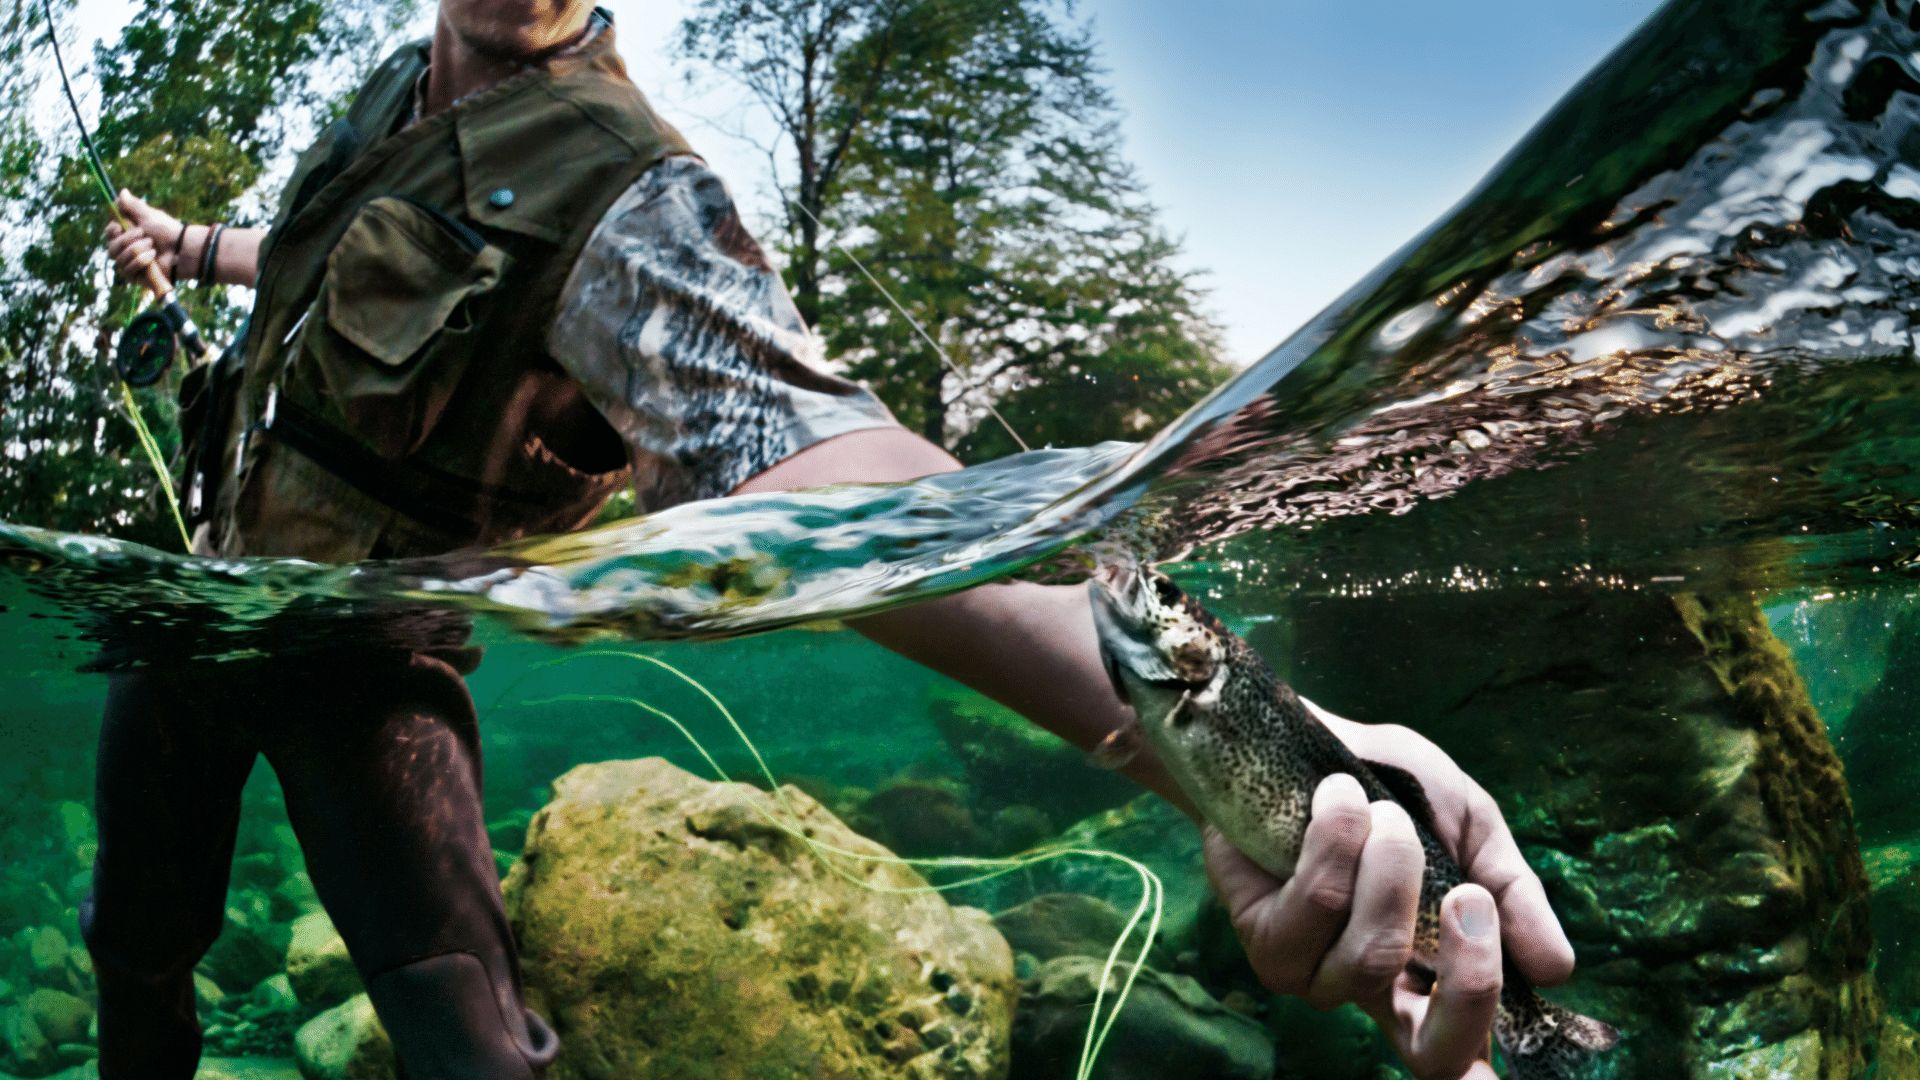 Interested in fish conservation and management? Drop us a line